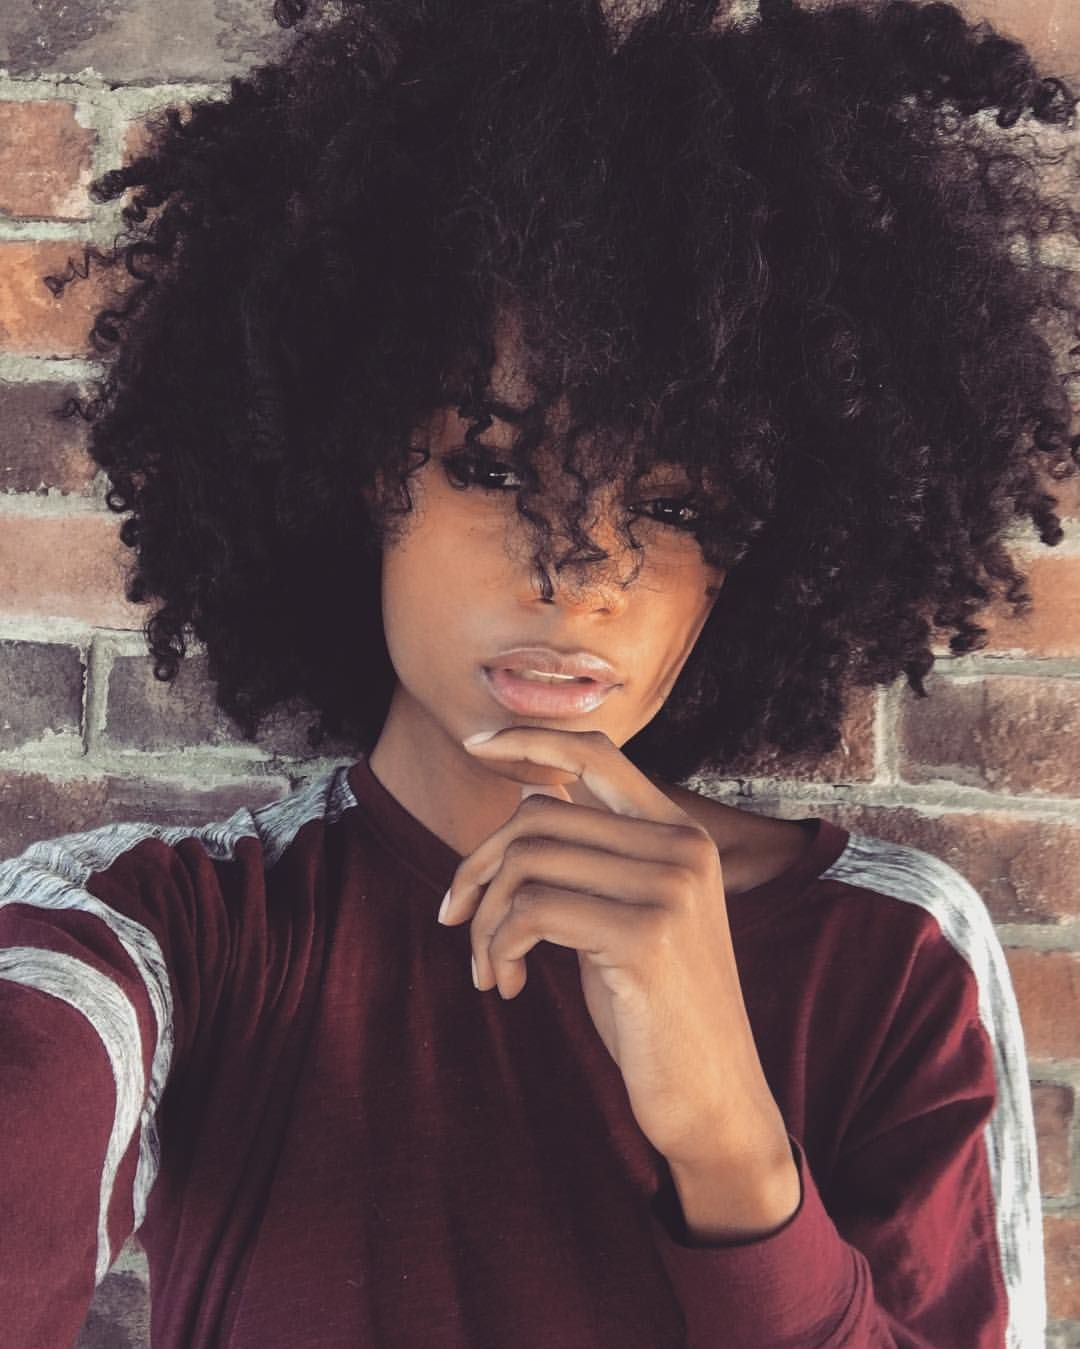 Short Kinky Curly Human Hair Wigs Wig Natural Looking Afro For Black Women Brown